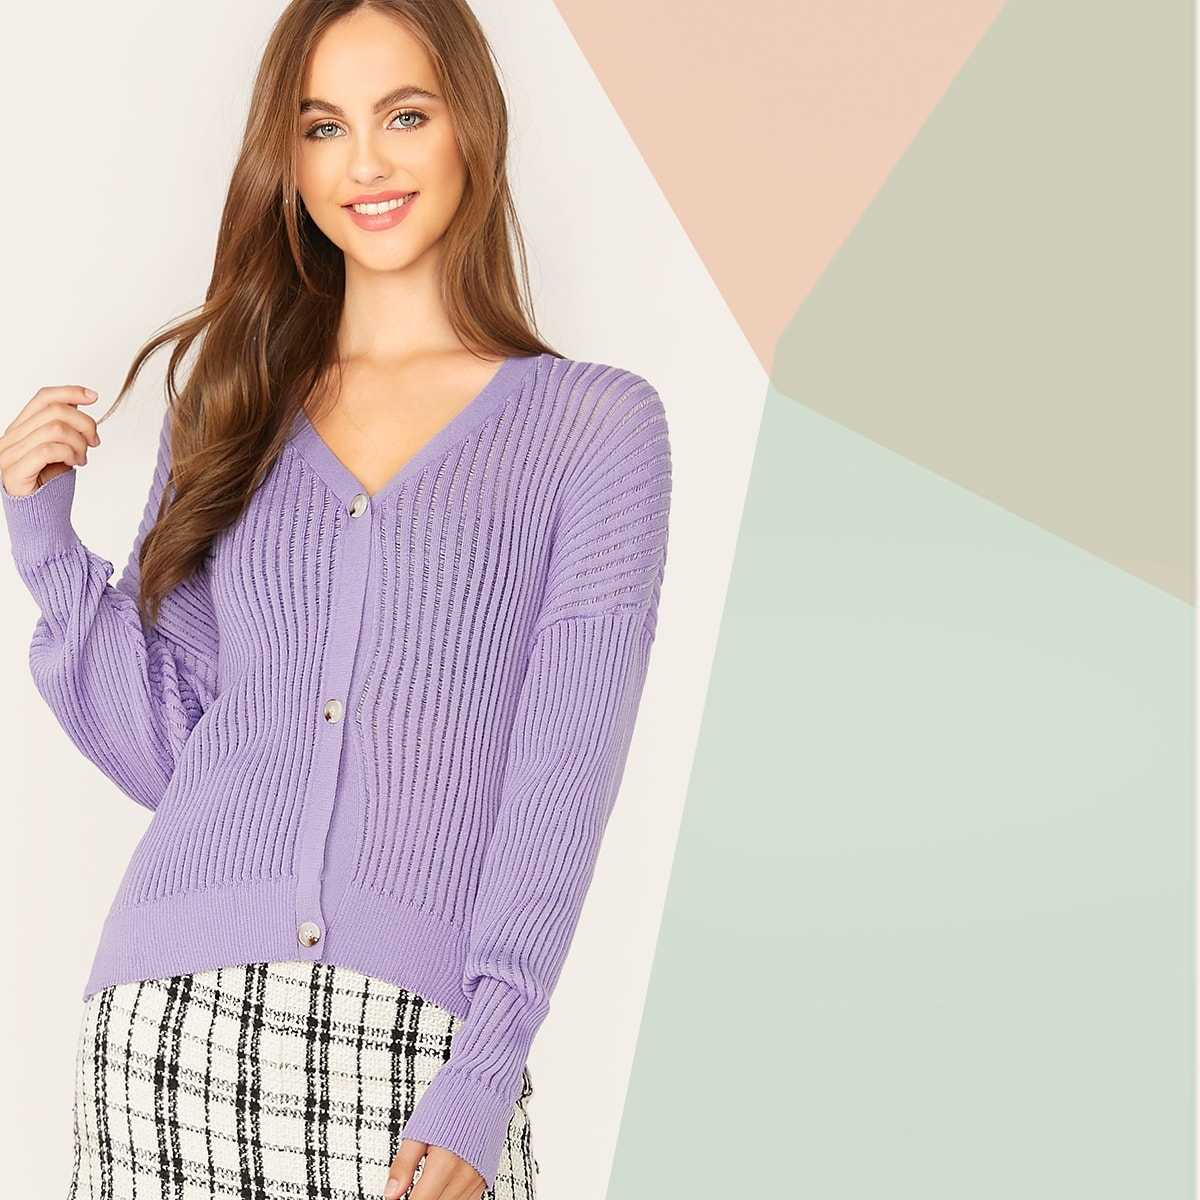 Buttoned Placket Drop Shoulder Cardigan in Purple by ROMWE on GOOFASH